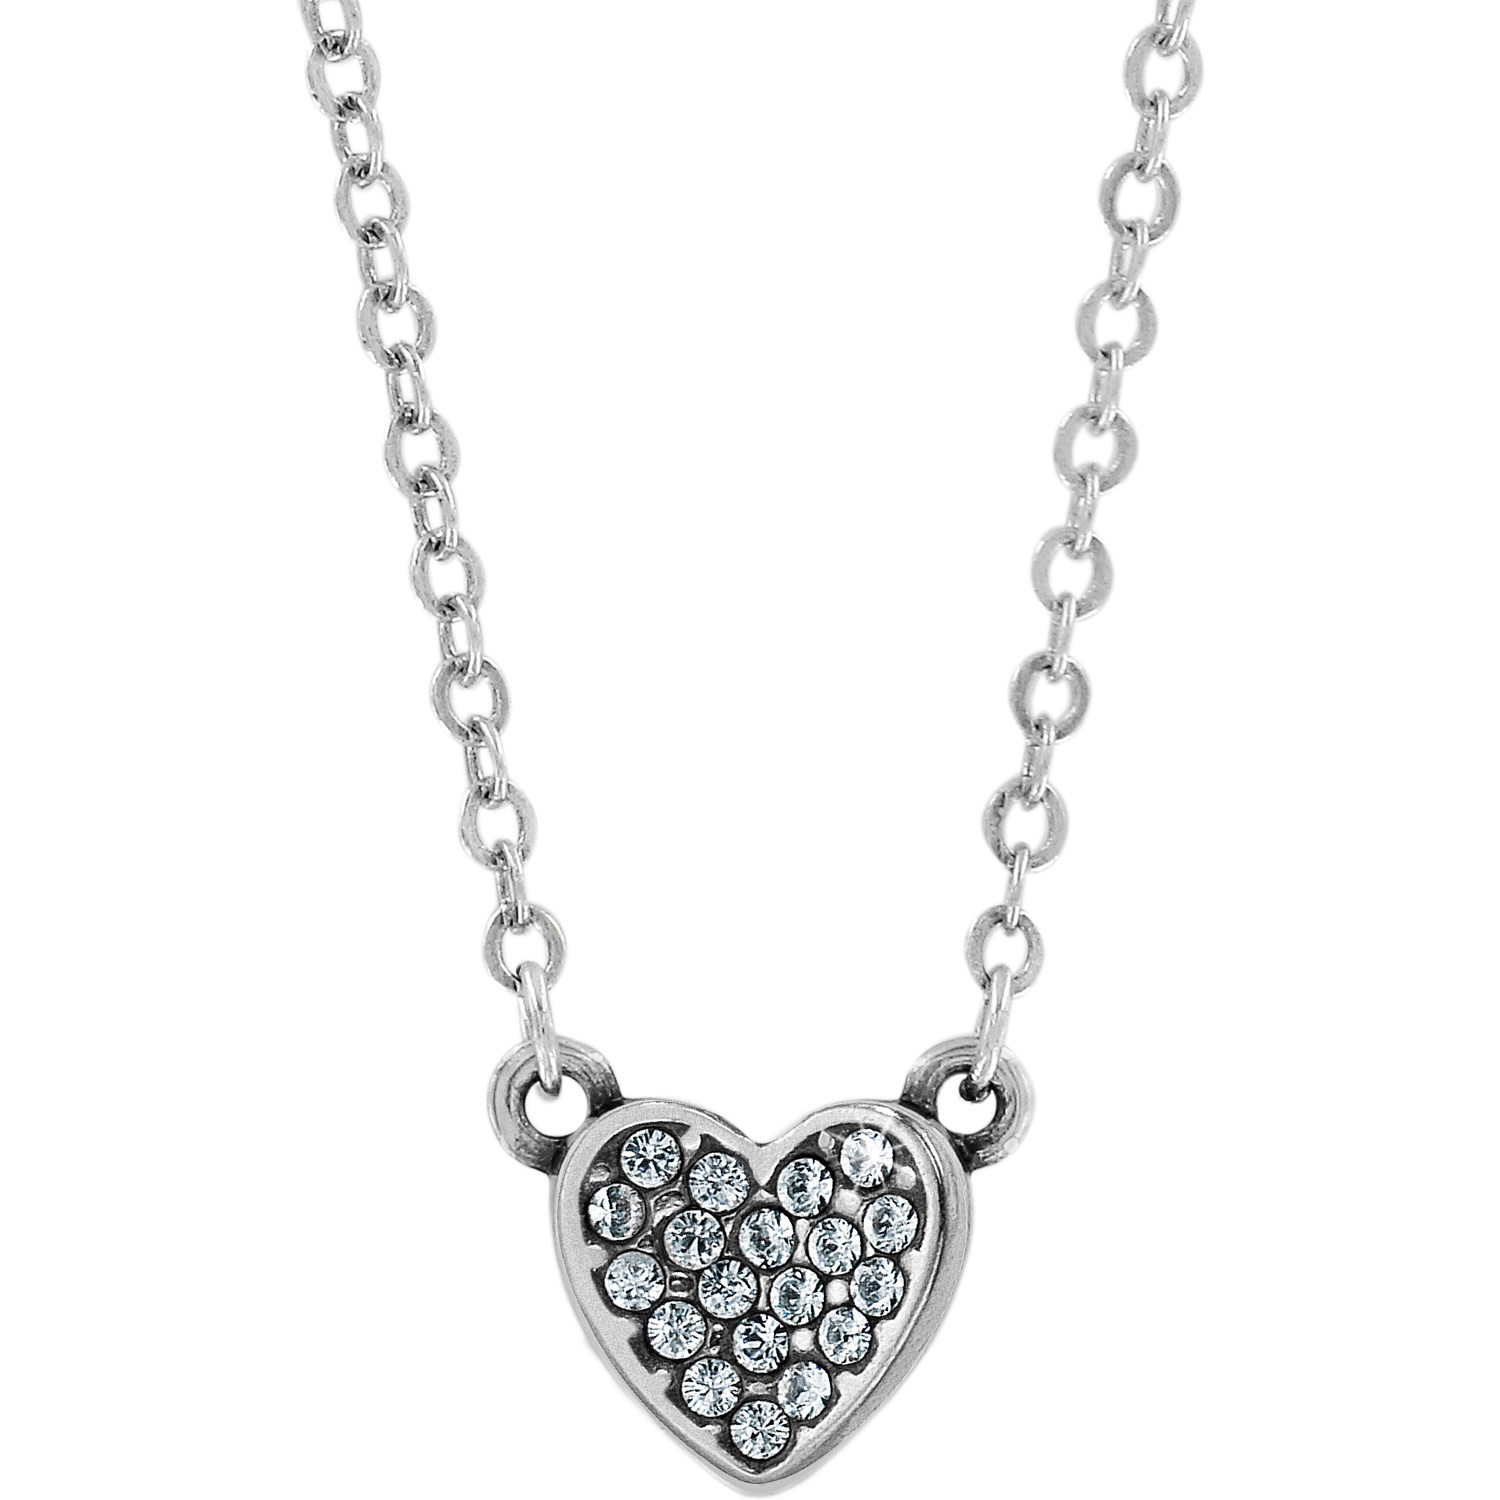 BRIGHTON chara heart necklace